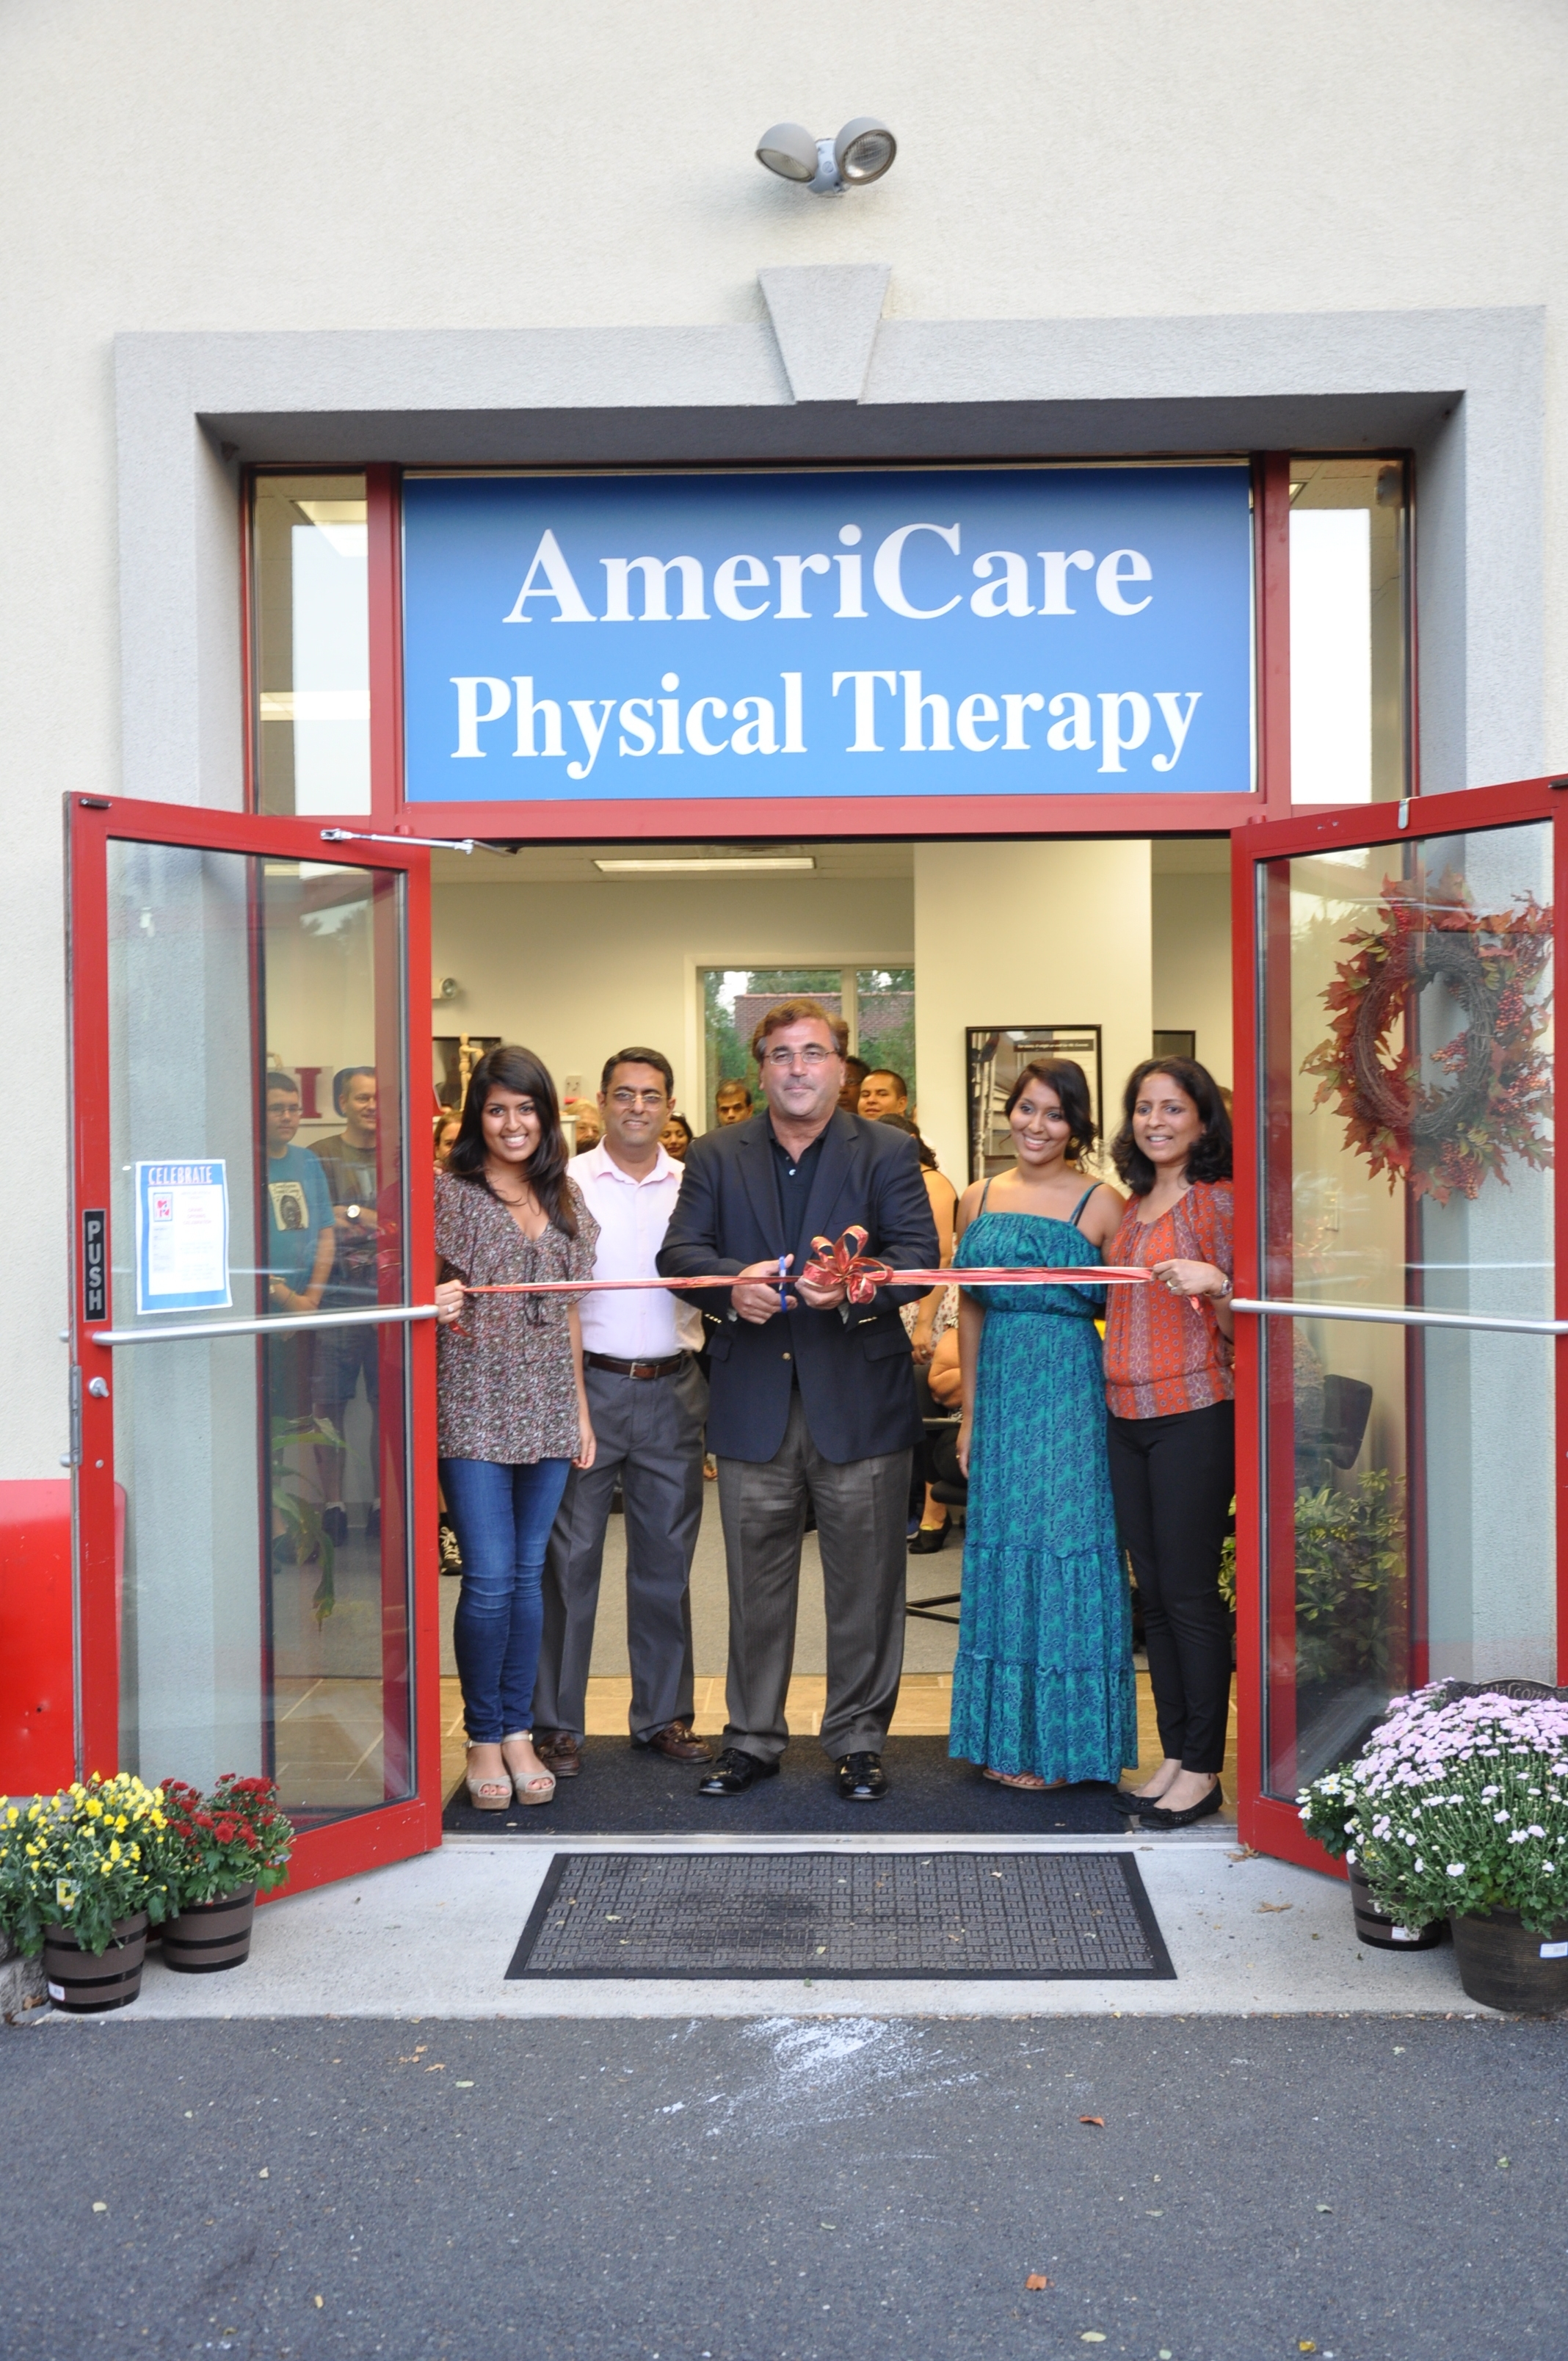 a828bbfb76192a3c0ff0_AmeriCare_Physical_Therapy_Ribbon_Cutting.jpg